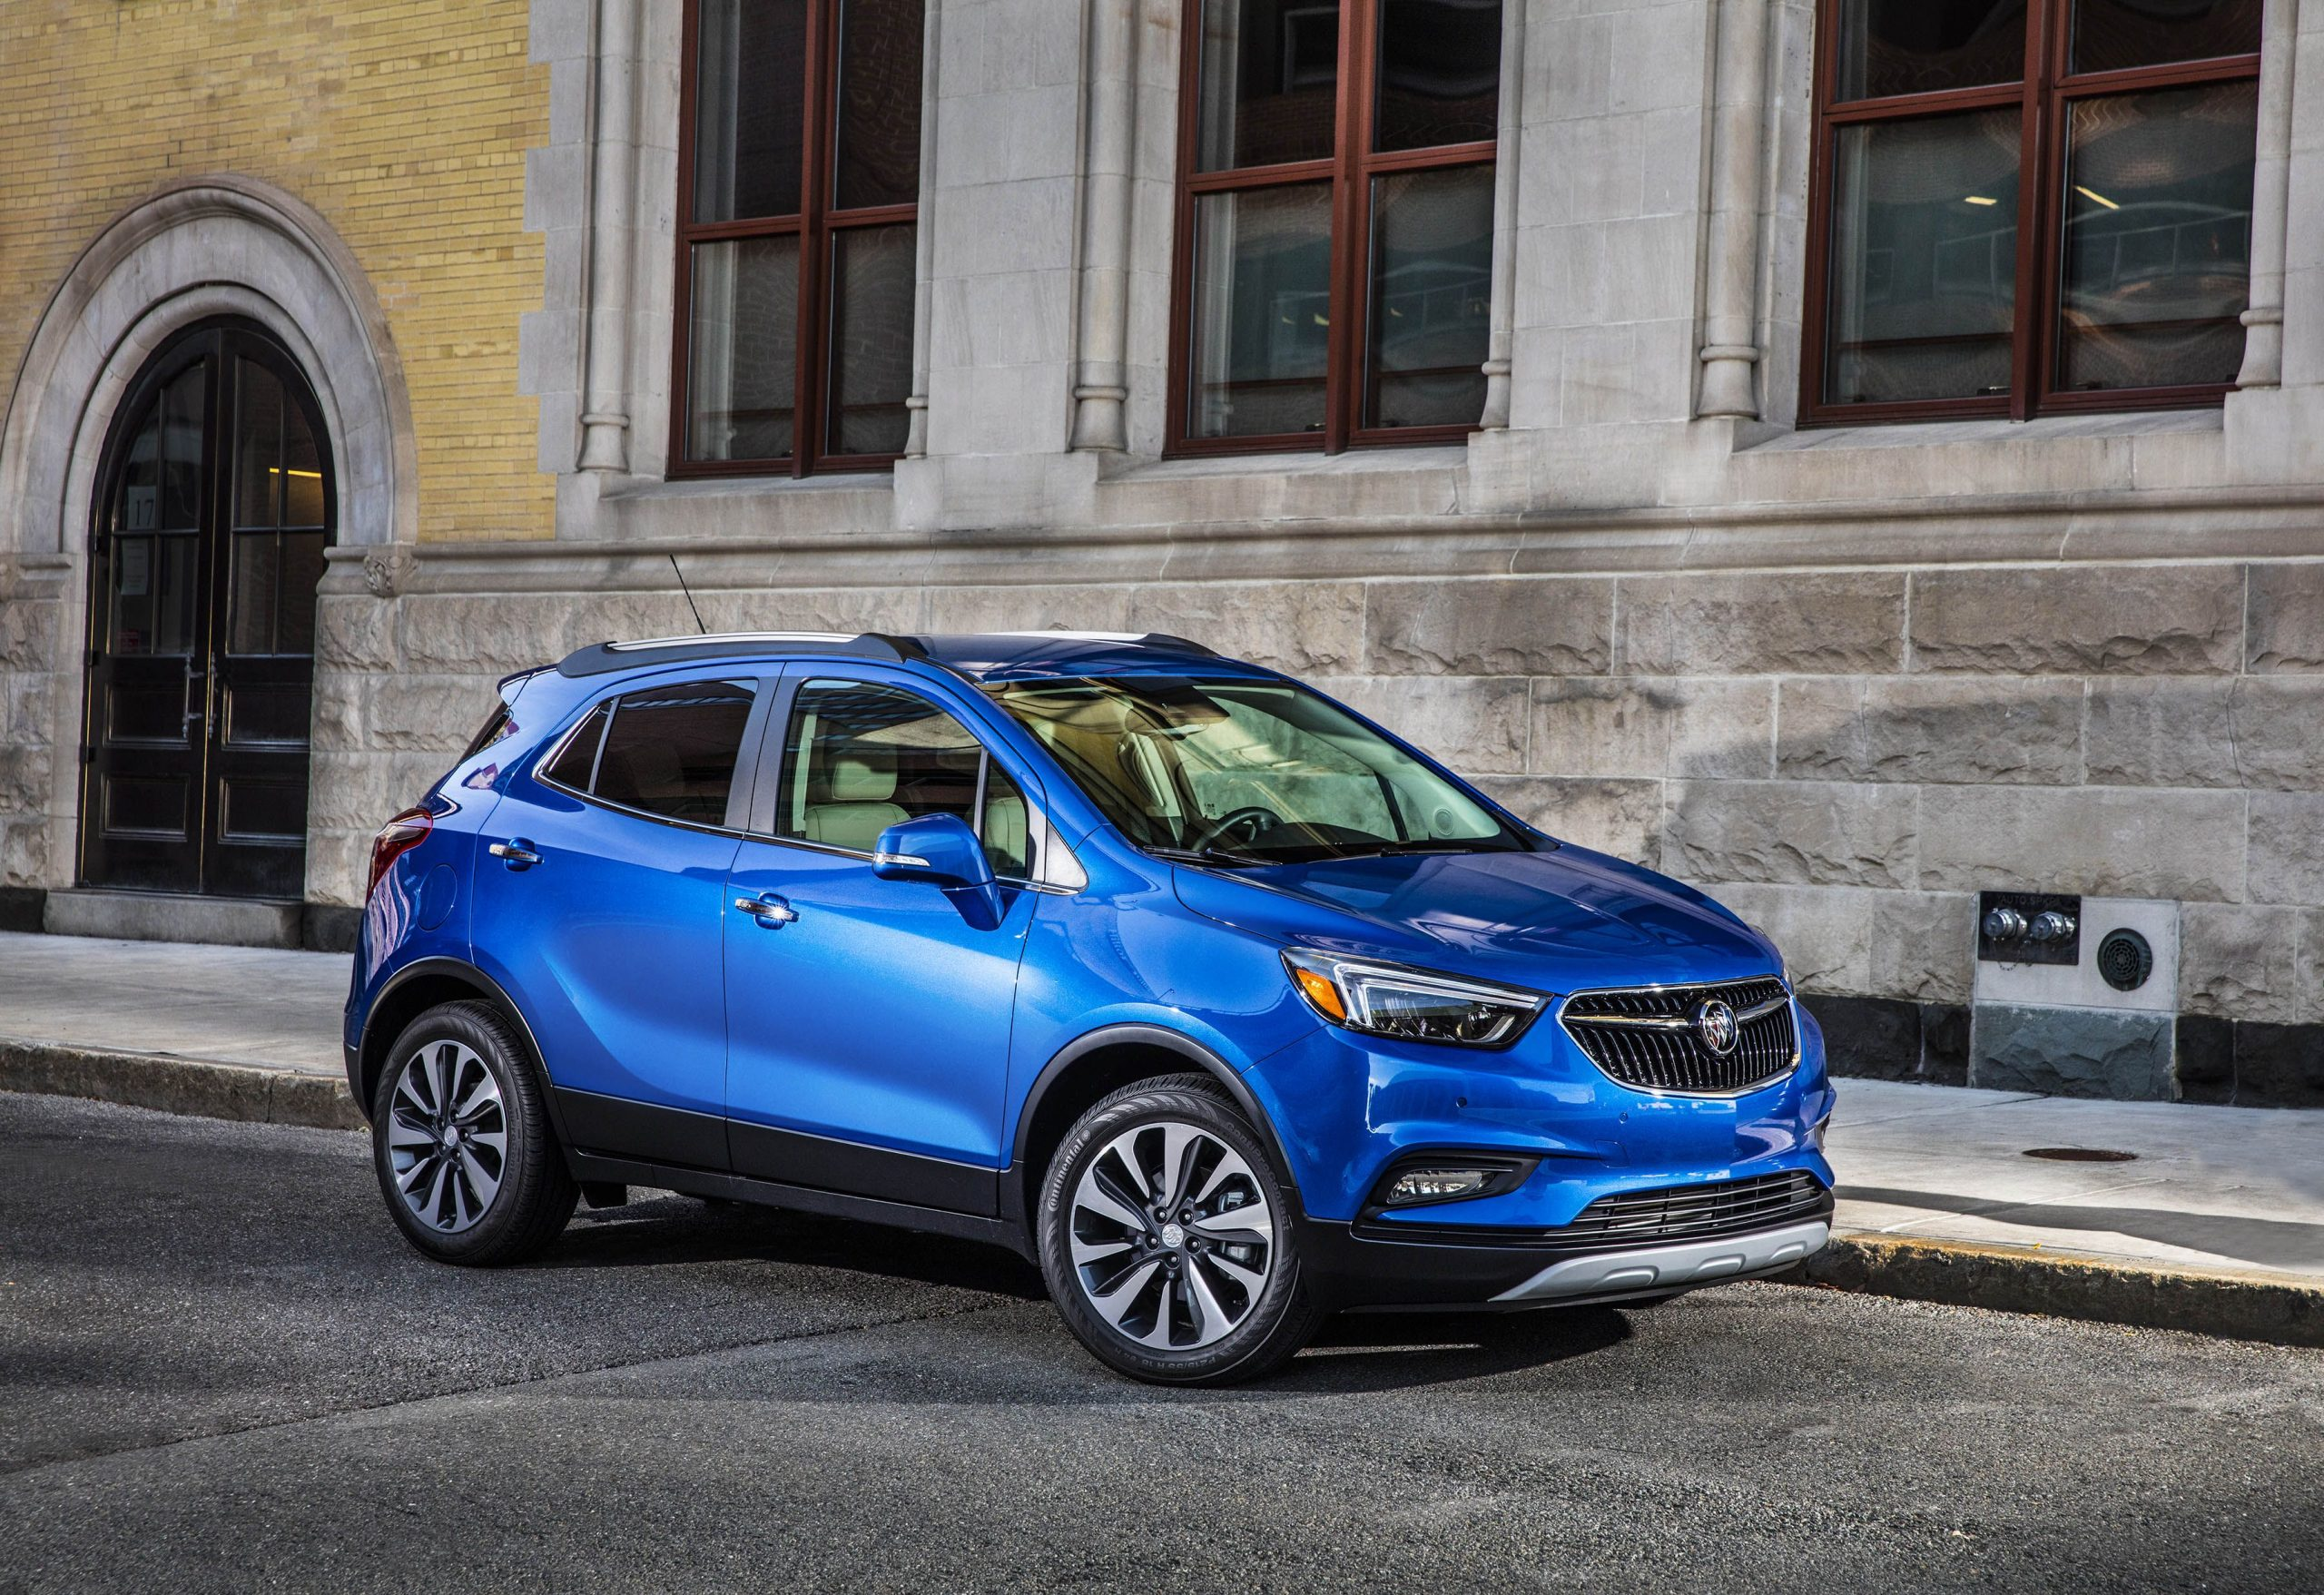 2020 Buick Encore Review, Pricing, And Specs 2022 Buick Encore Essence Reviews, Fwd, Specs